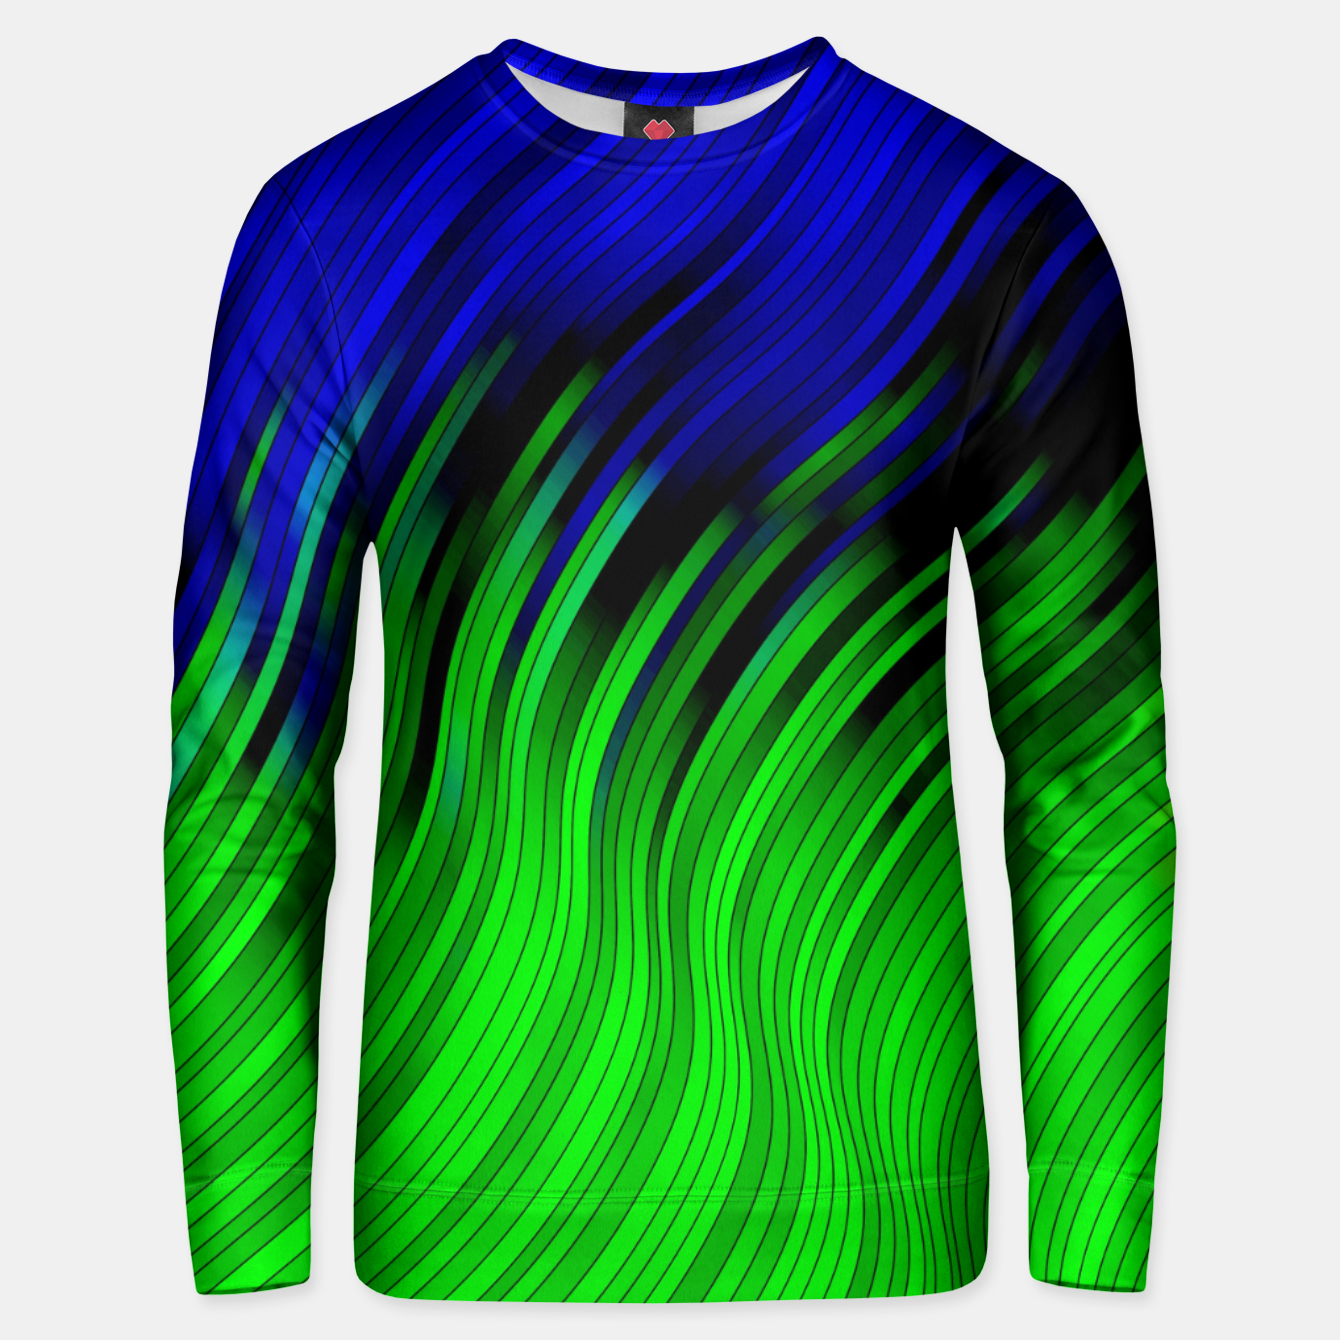 Foto stripes wave pattern 2 with lines vtgi Unisex sweater - Live Heroes